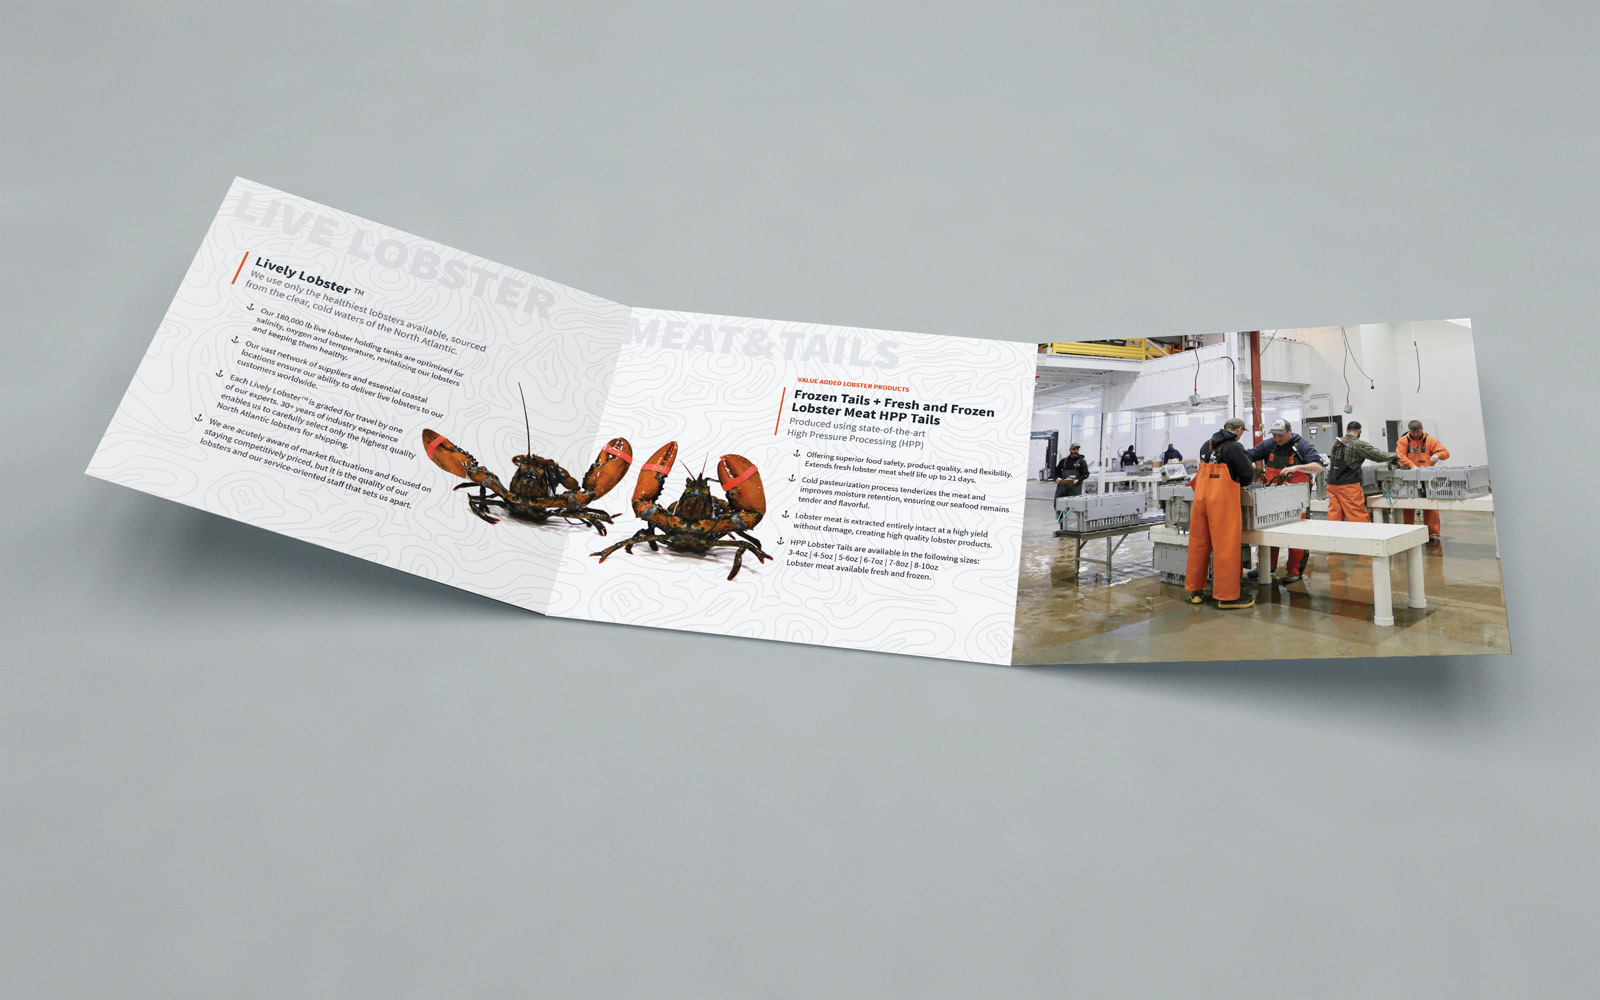 Maine Coast trifold brochure full spread with high resolution photography and text on a topographical map background